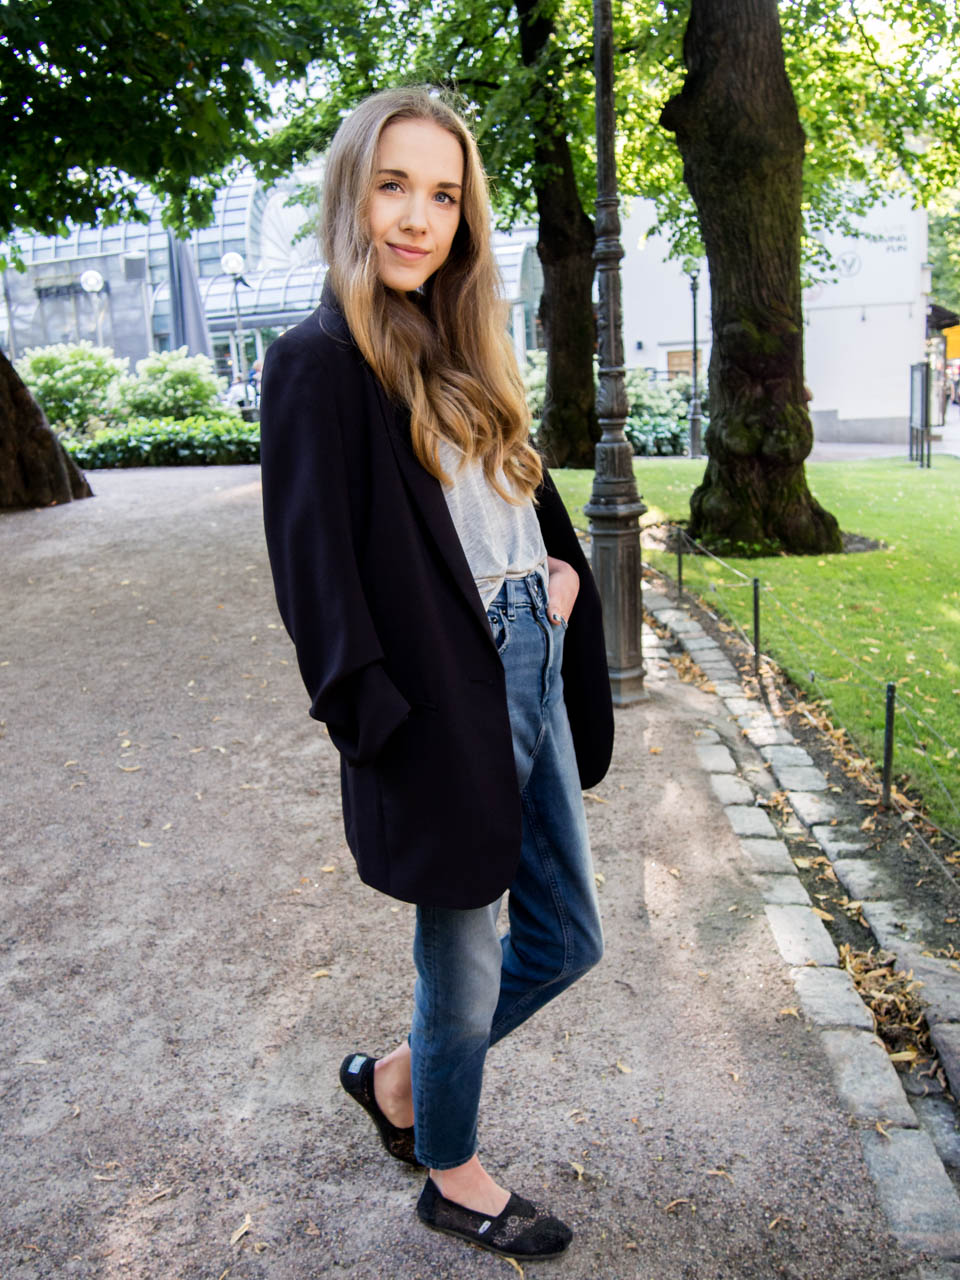 fashion-blogger-outfit-inspiration-mom-jeans